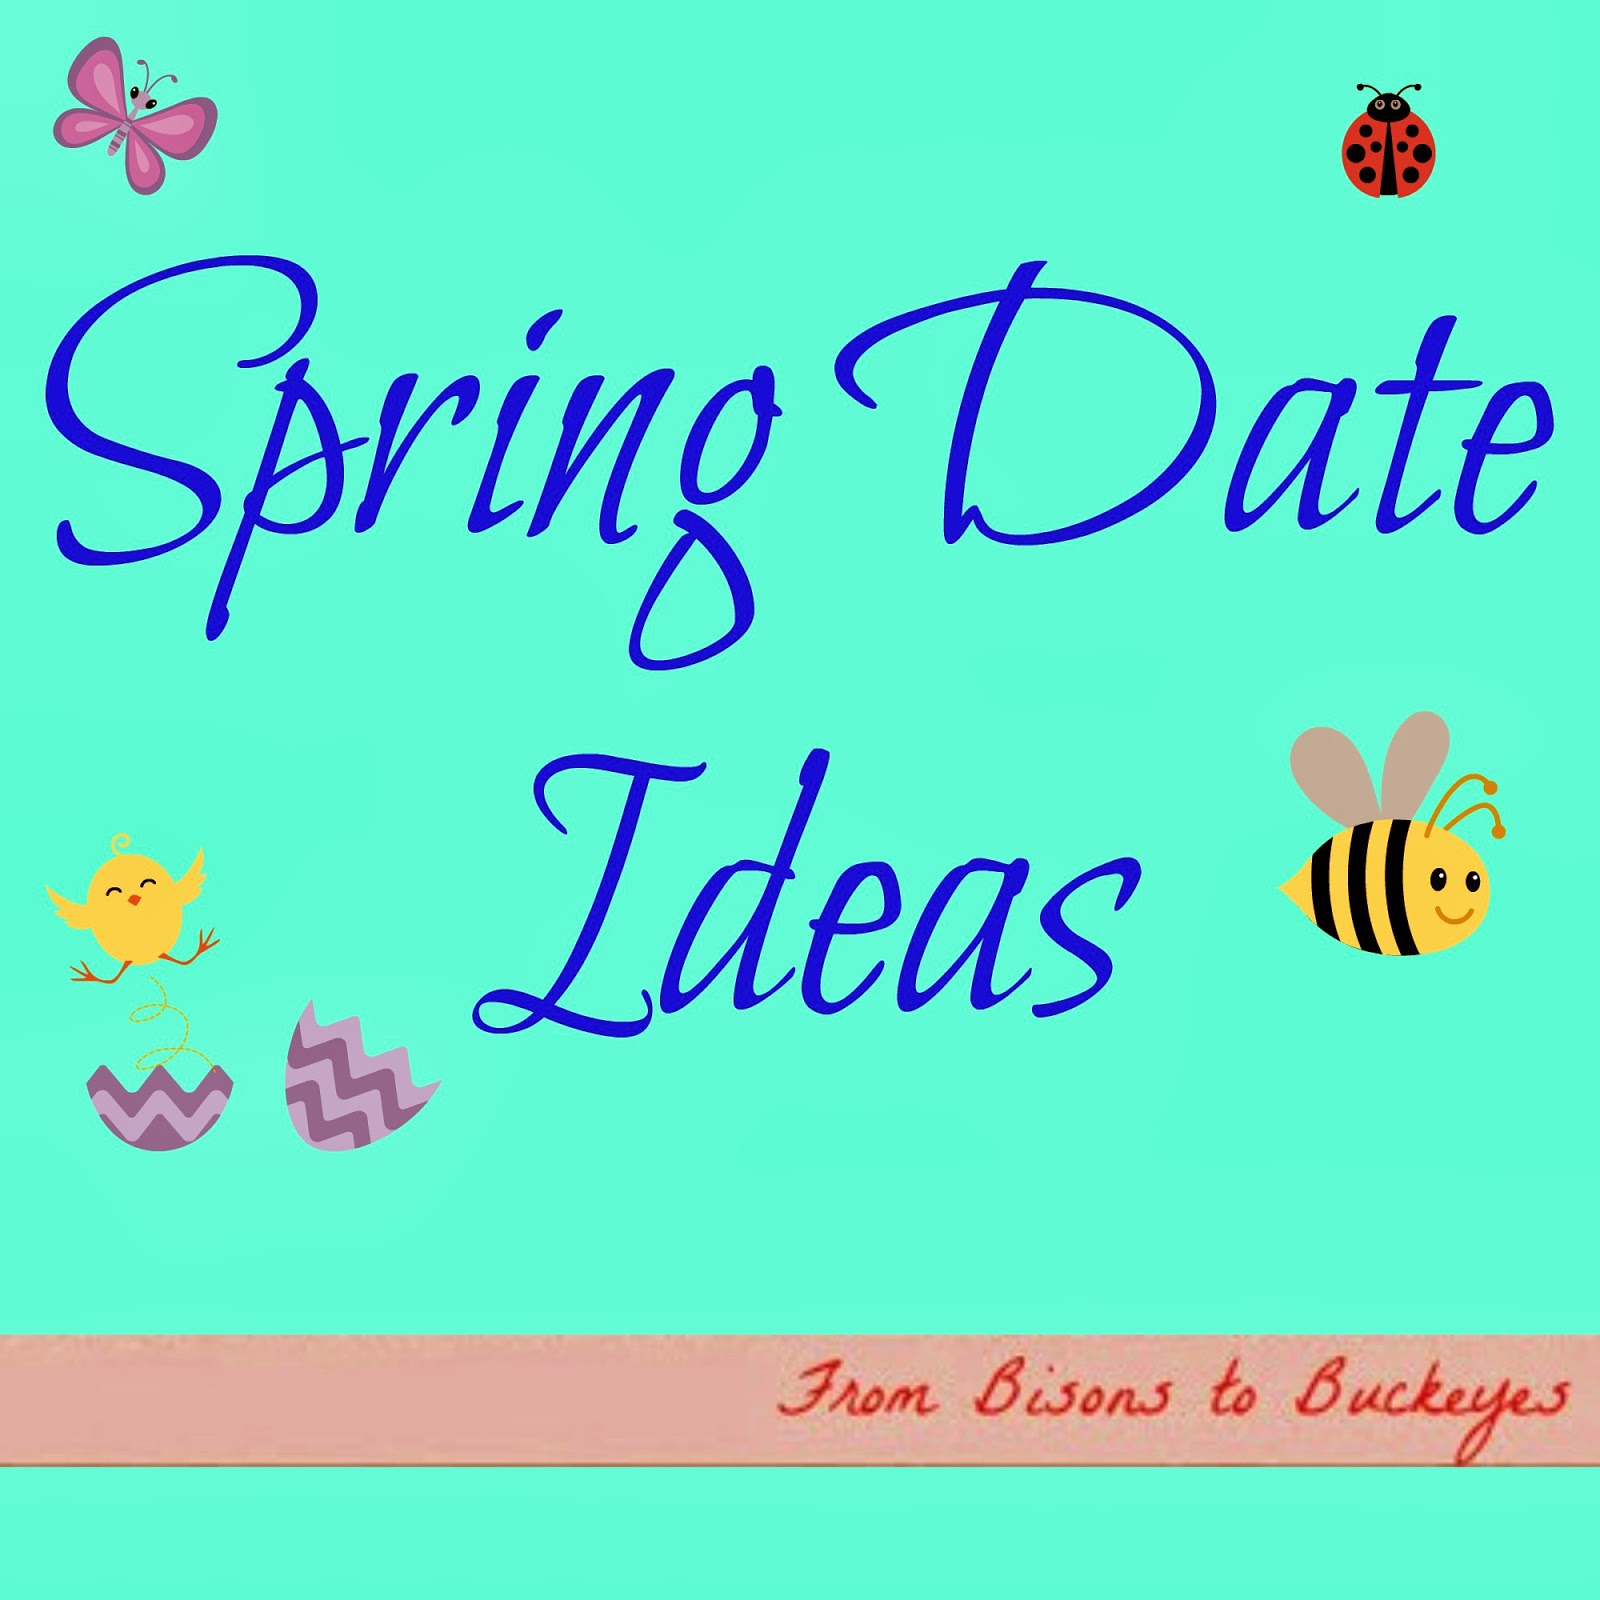 7 Date Ideas for Spring